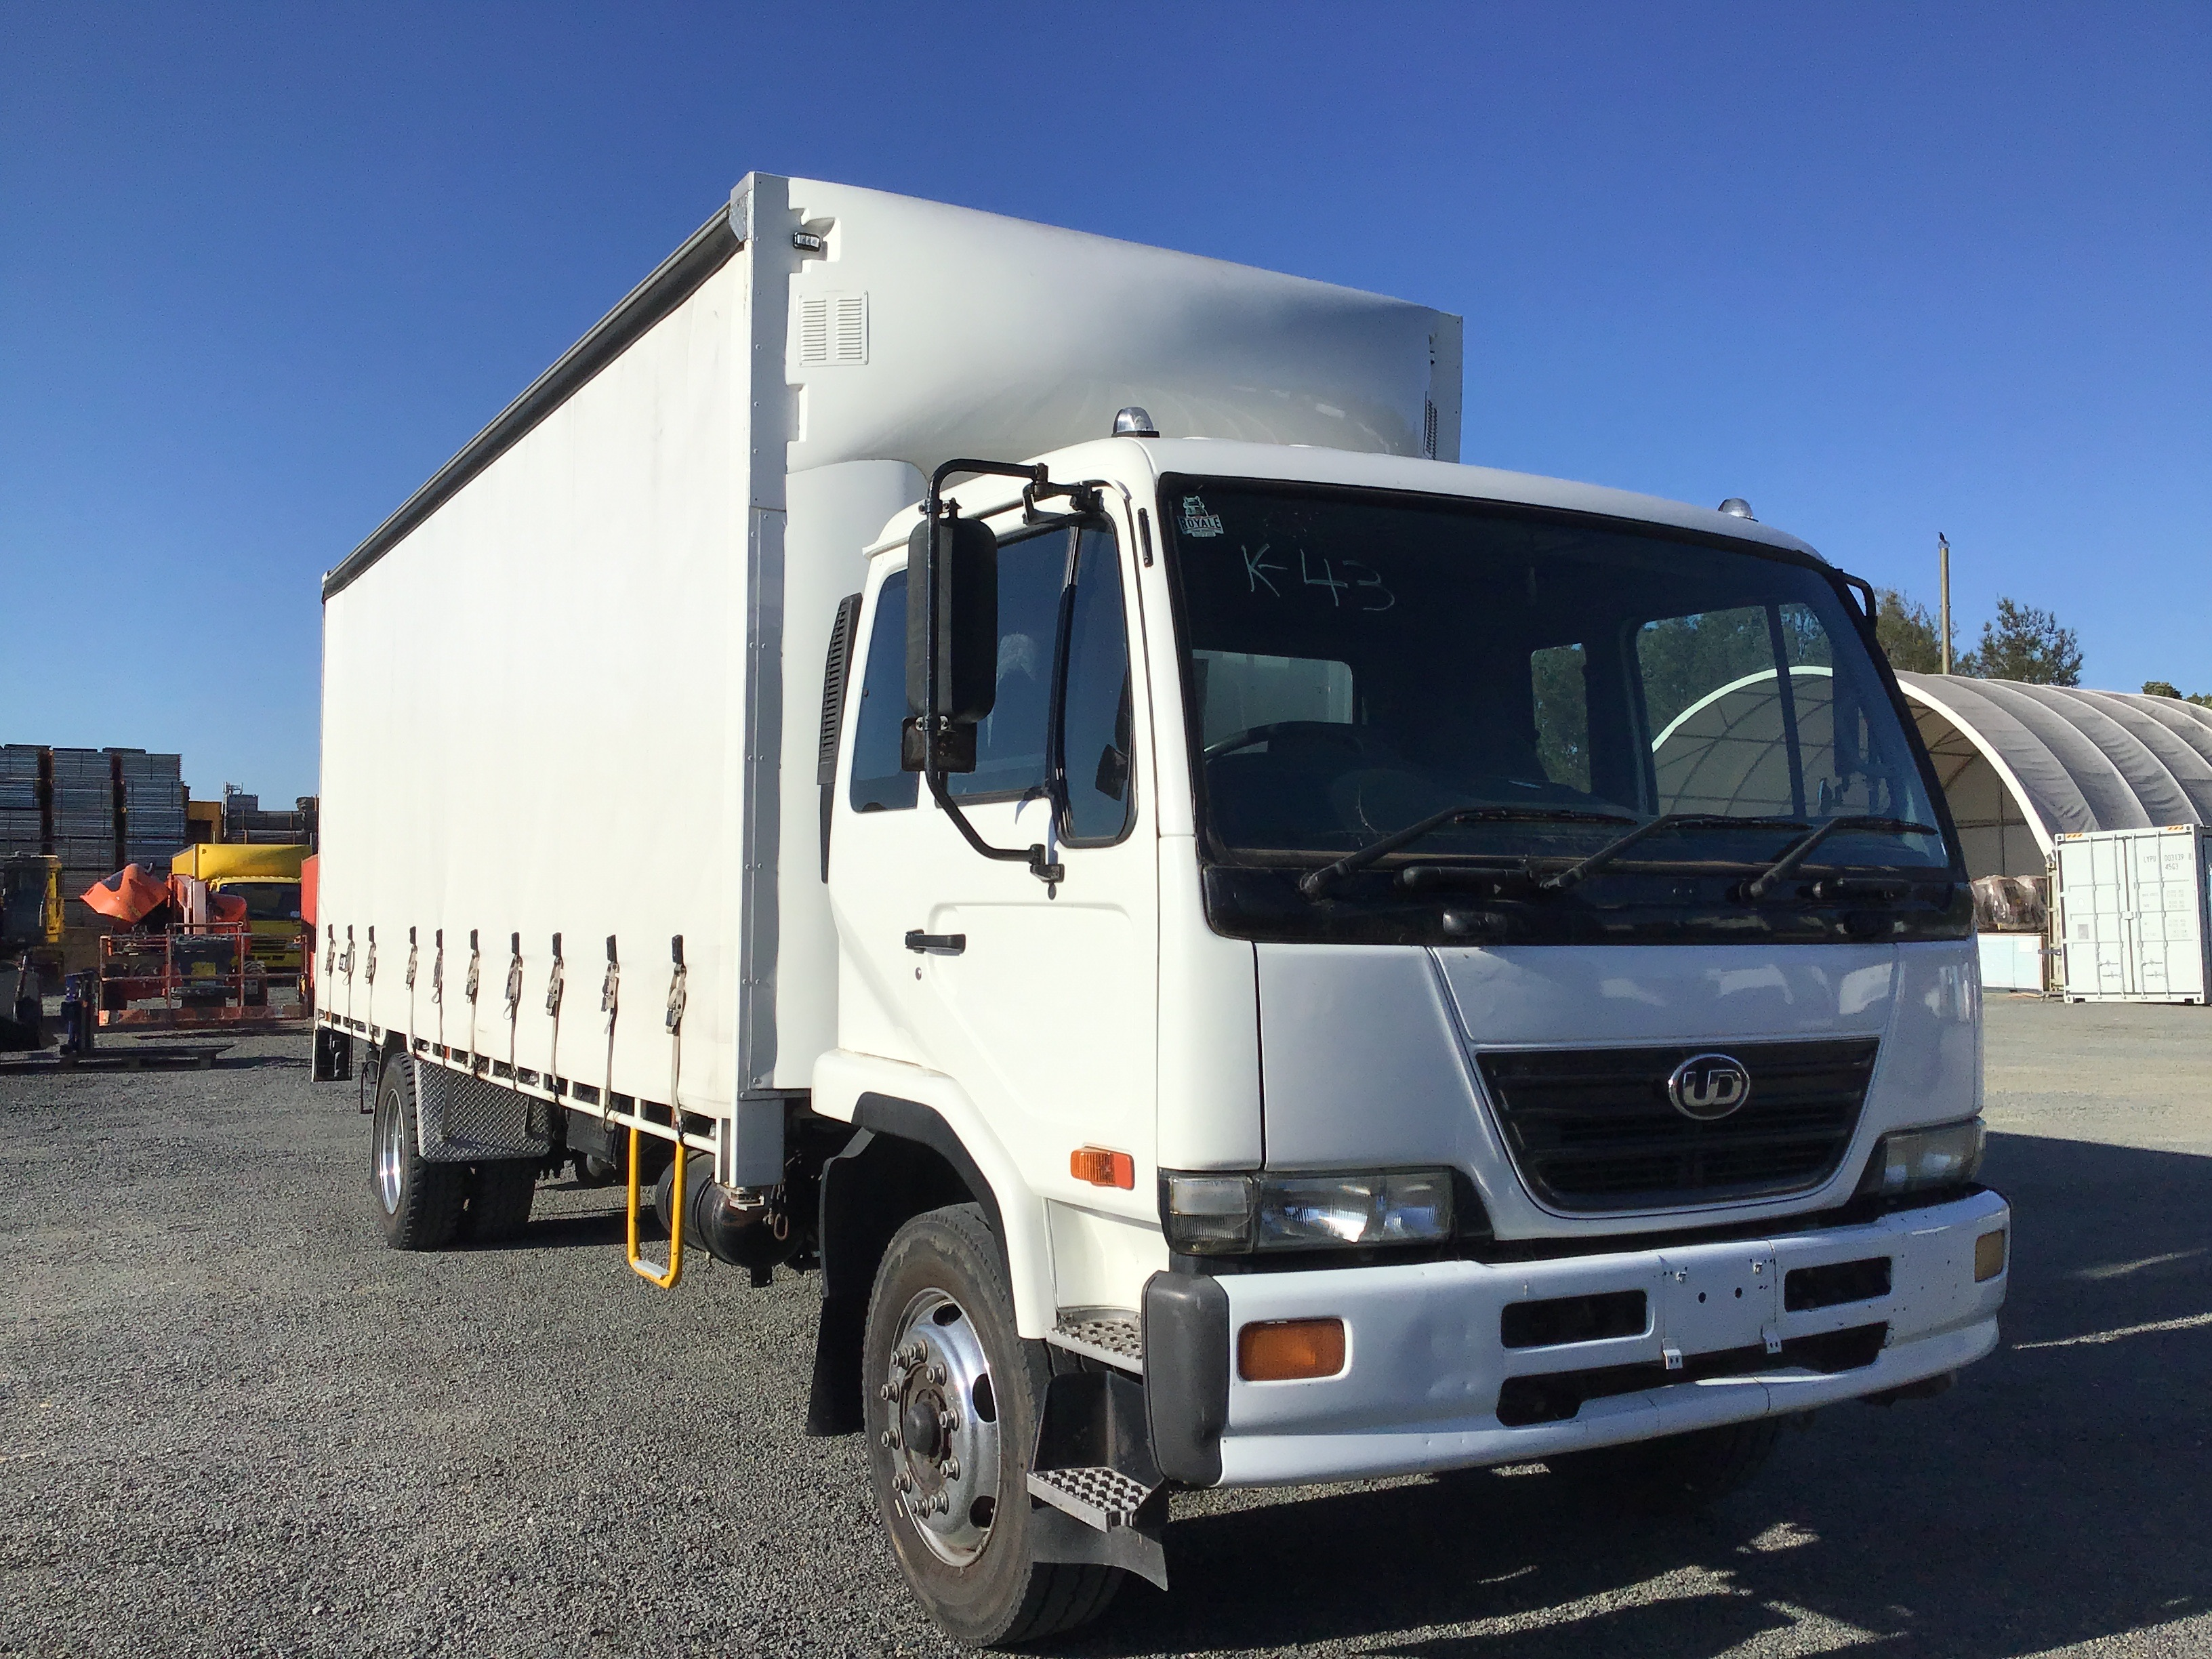 2008 U.D. PKC37A 4 x 2 Curtainsider Rigid Truck